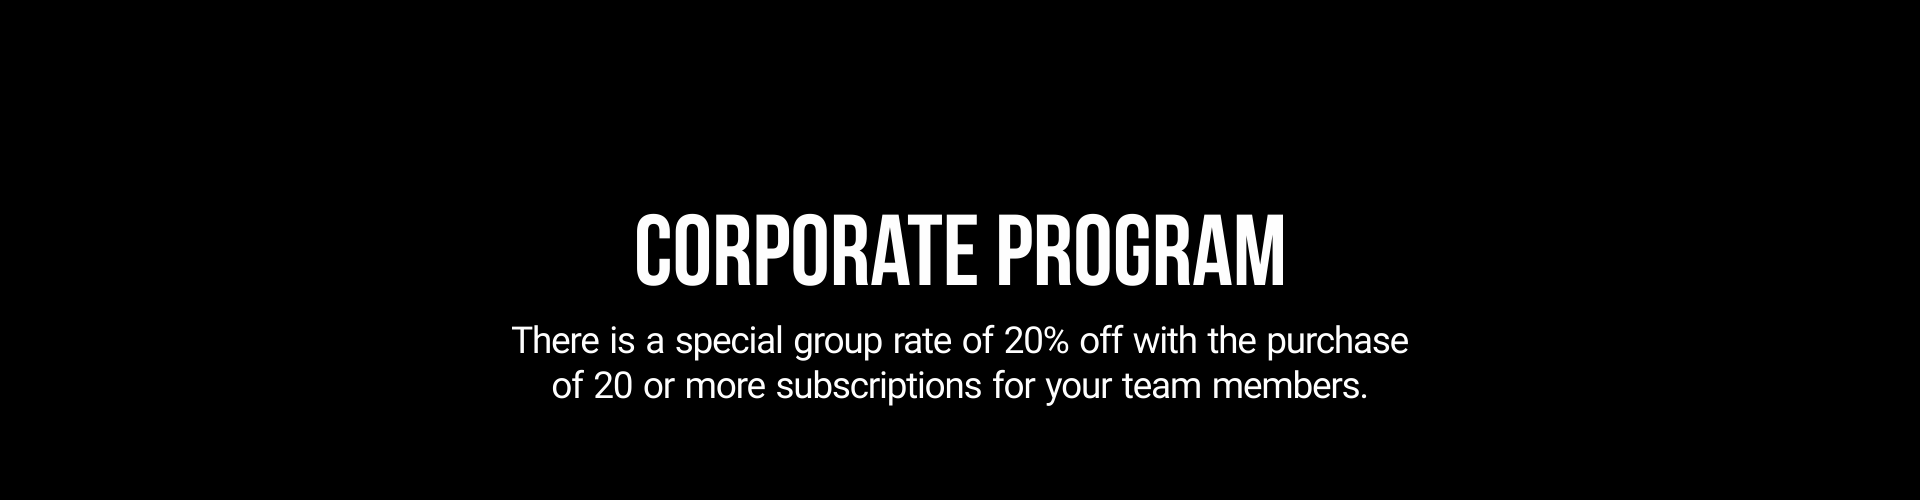 Graphic about discounts for corporate programs